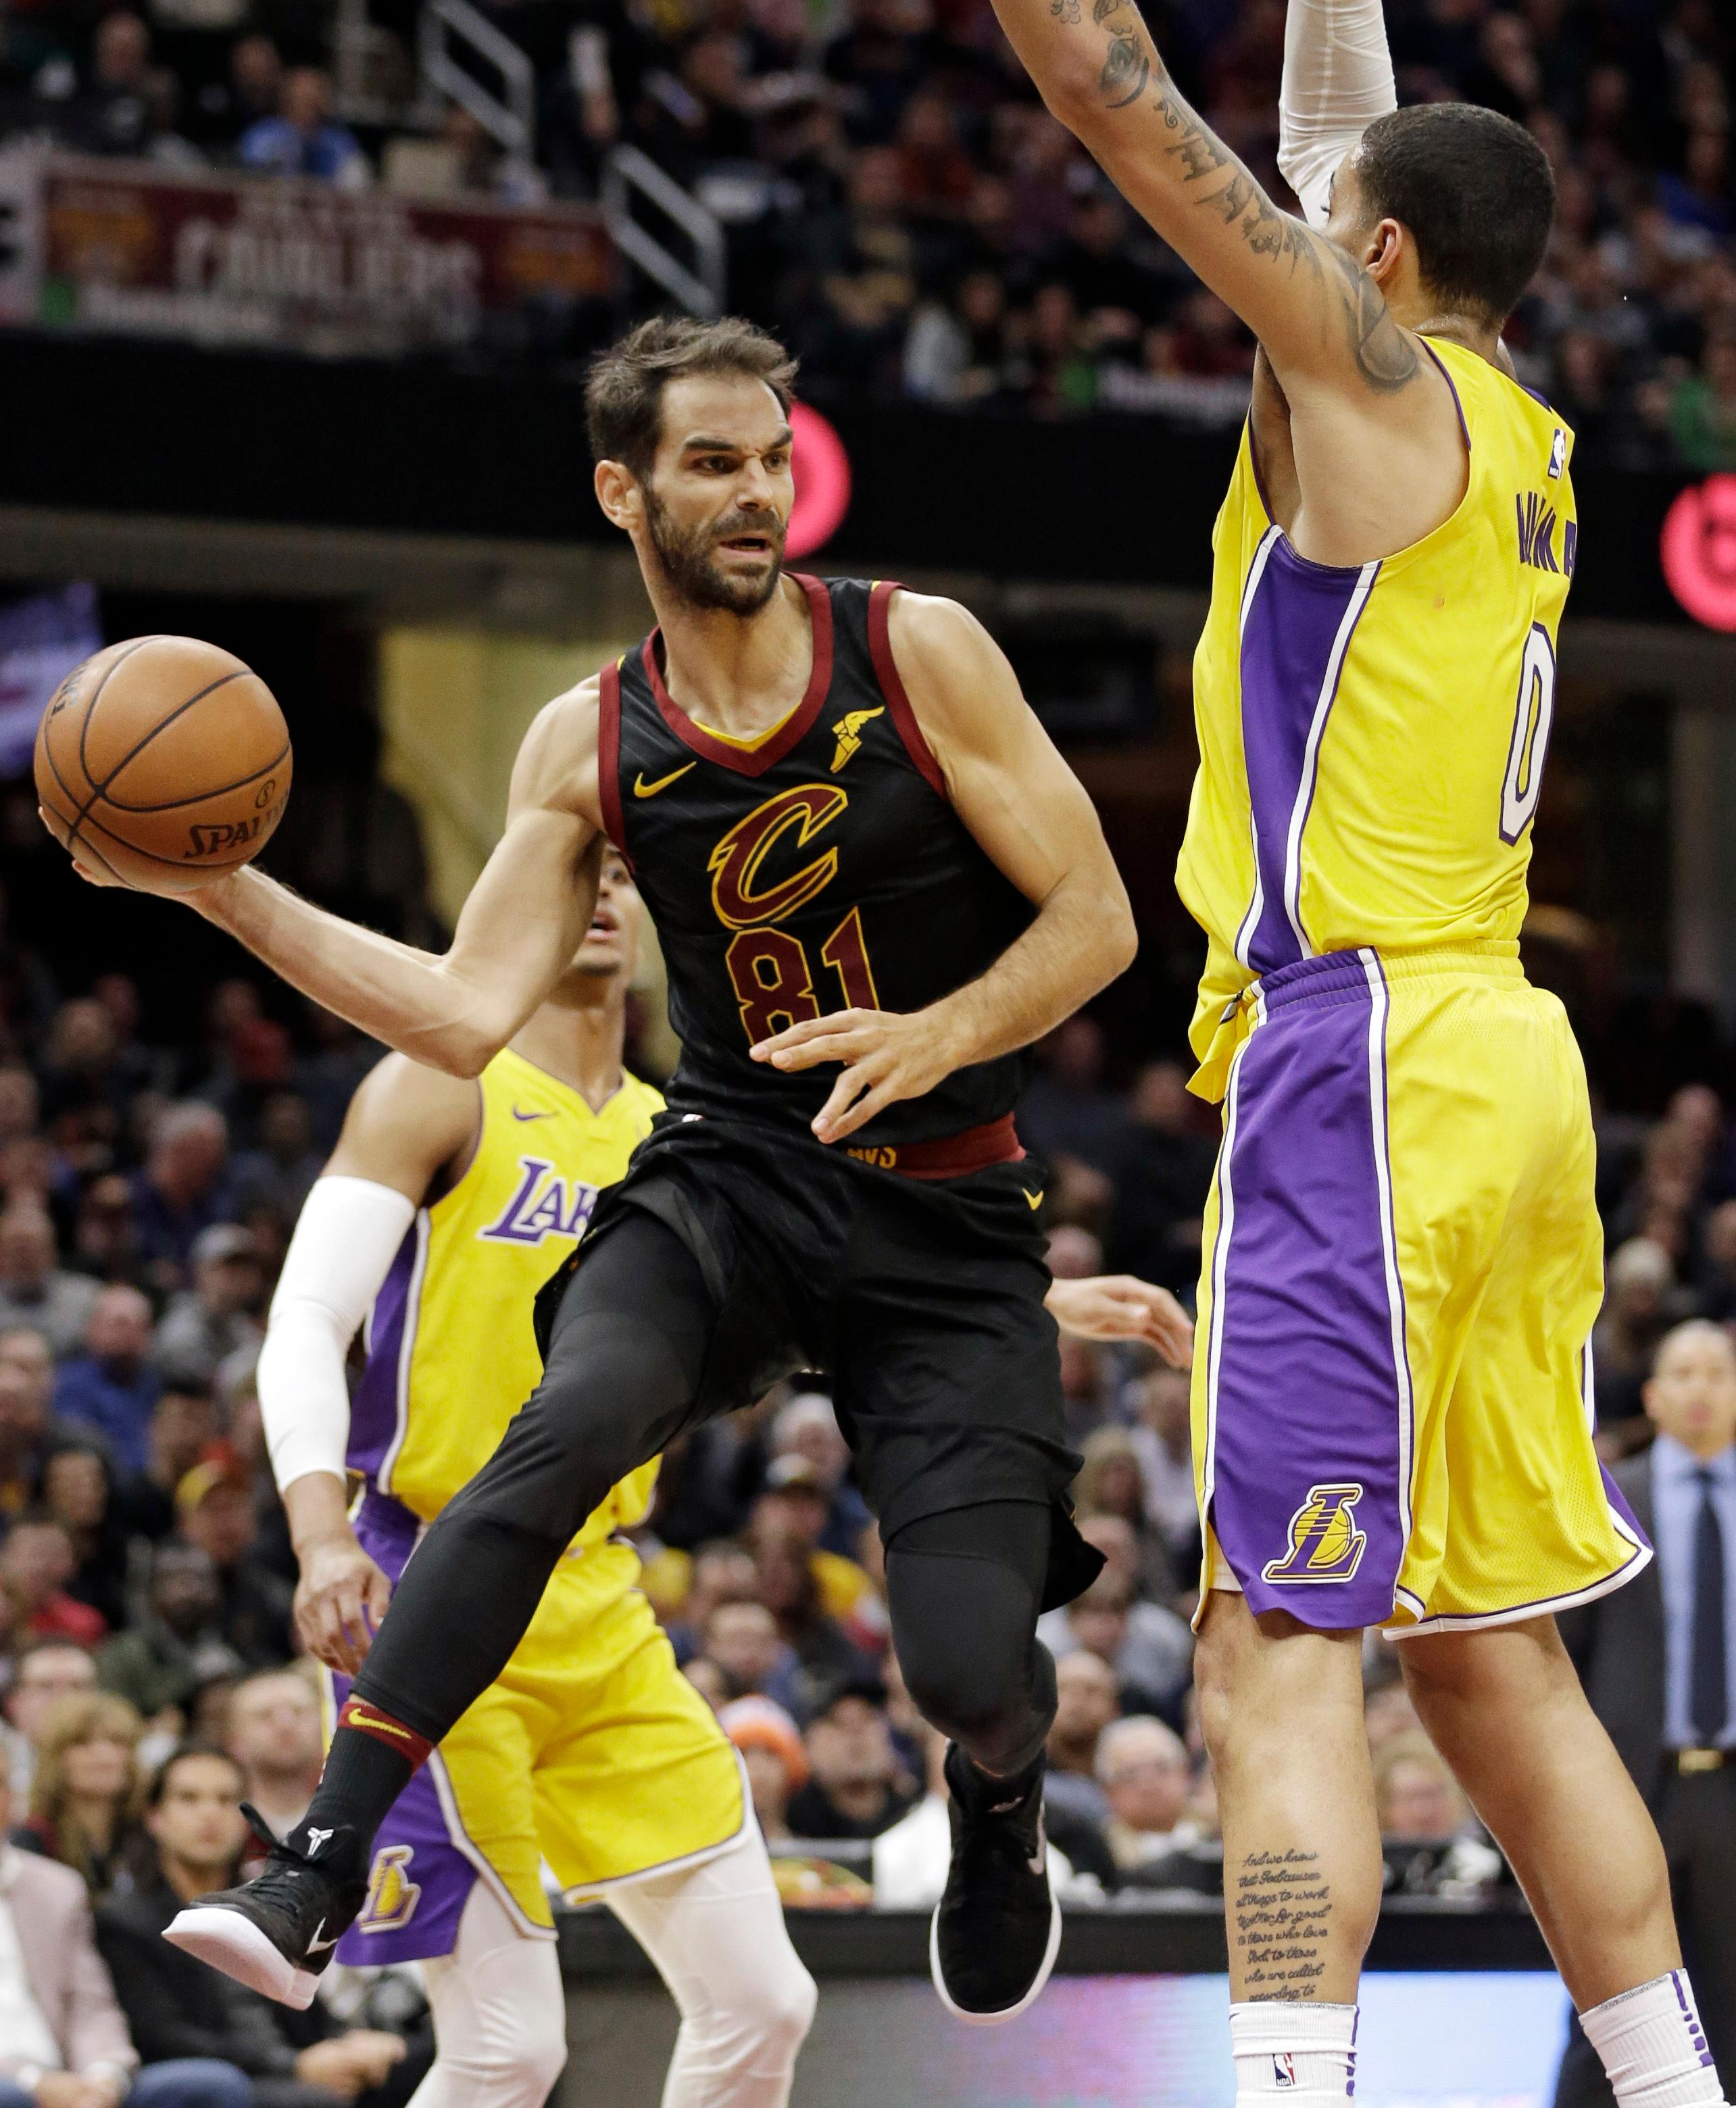 Cleveland Cavaliers' Jose Calderon (81), from Spain, looks to pass against Los Angeles Lakers' Kyle Kuzma (0) in the first half of an NBA basketball game, Thursday, Dec. 14, 2017, in Cleveland. (AP Photo/Tony Dejak)